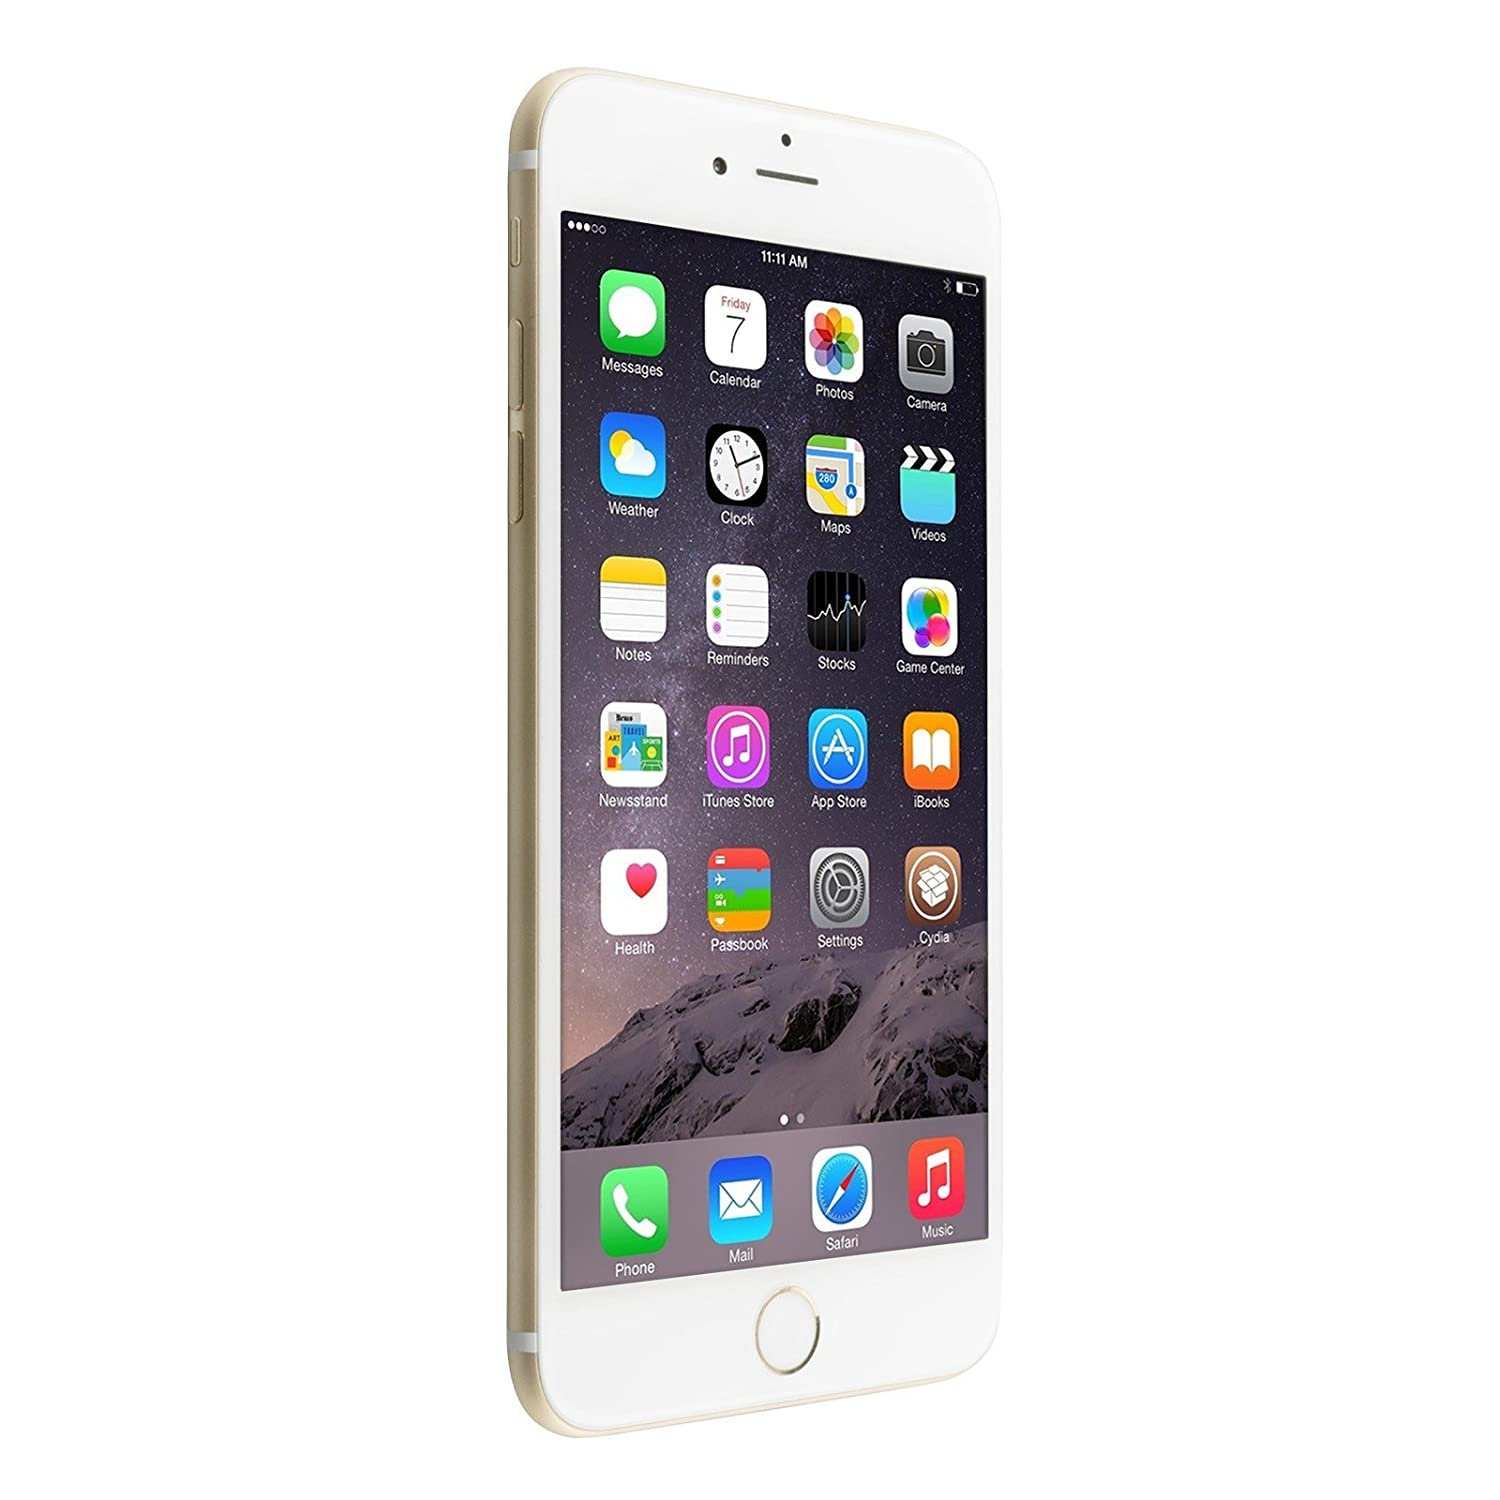 Amazon.com: Apple iPhone 6 Plus, GSM Unlocked, 64GB - Gold ...